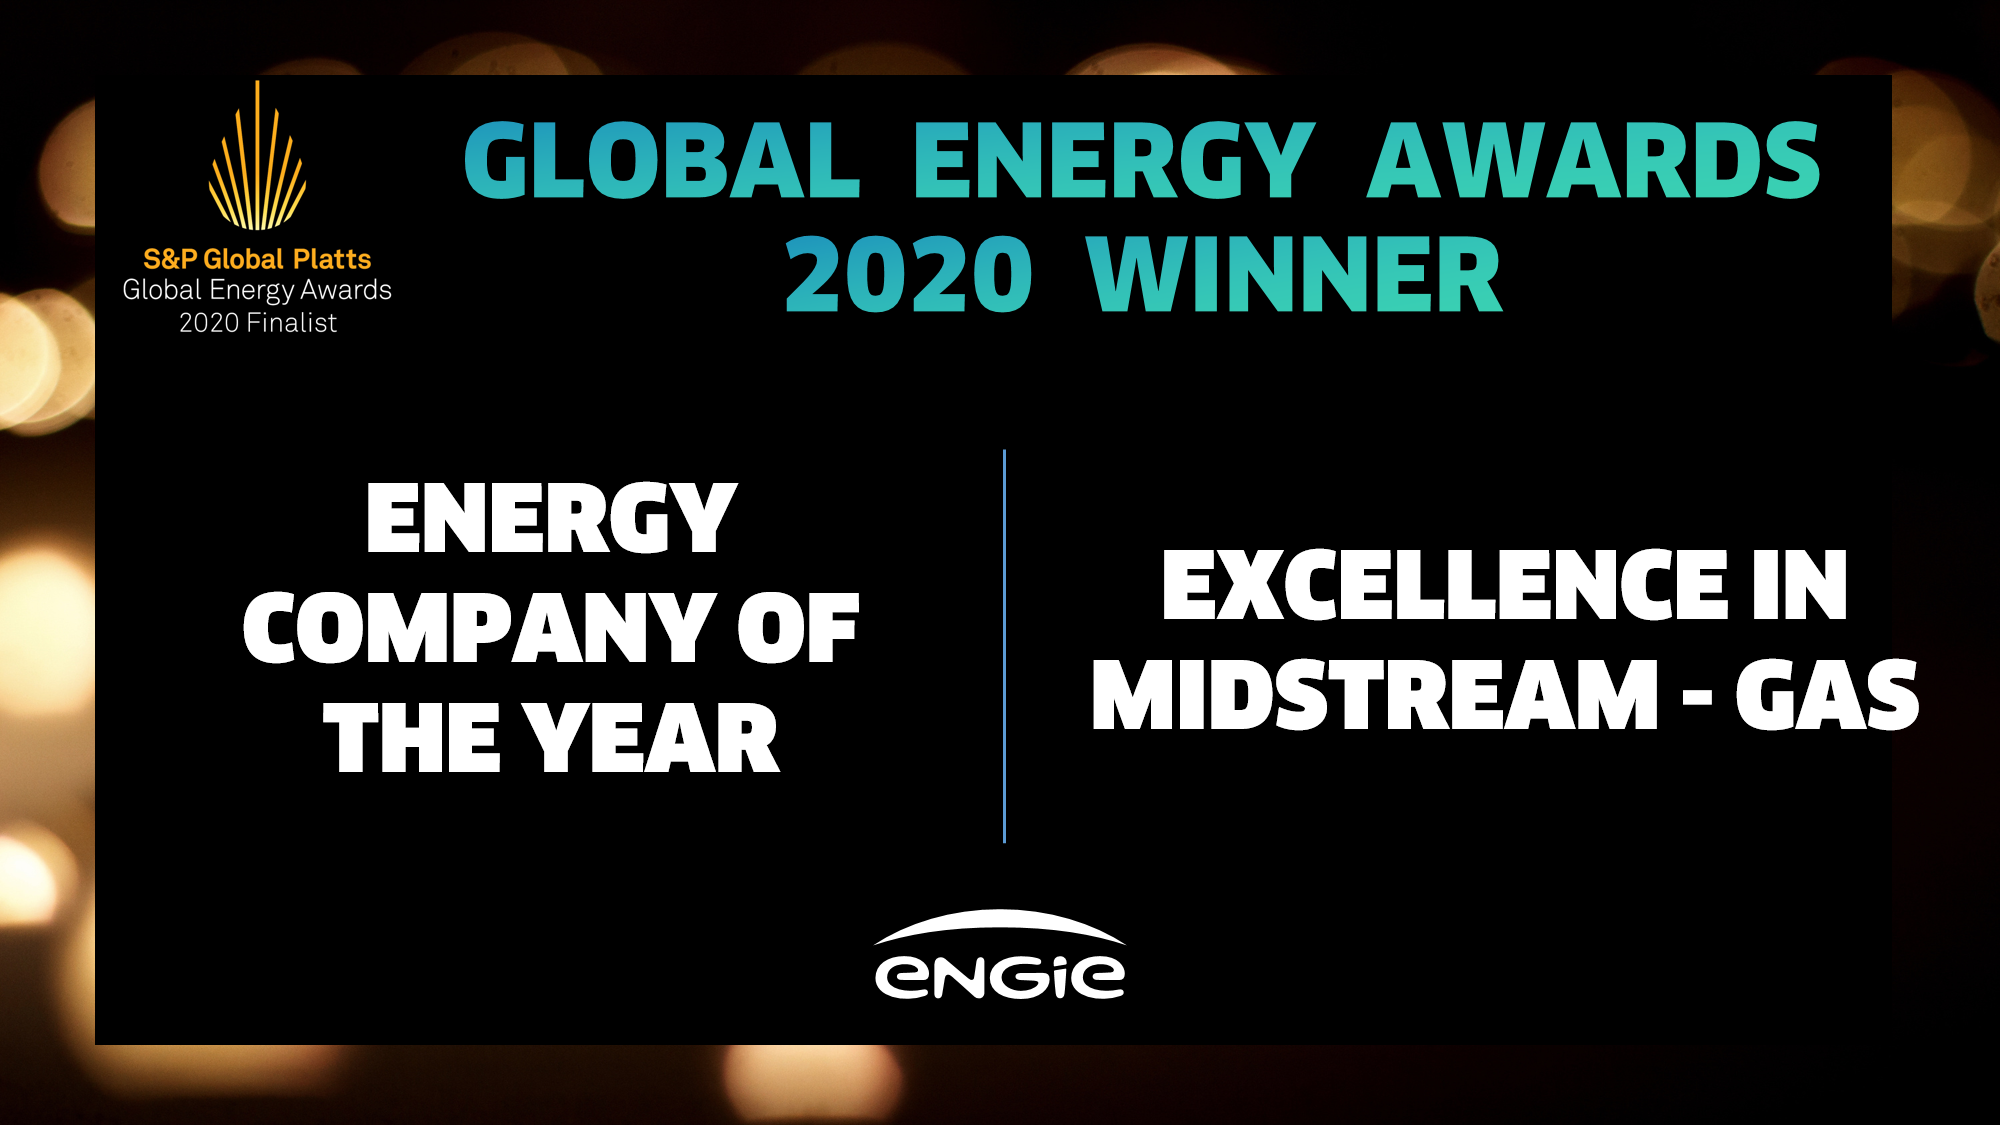 This year, ENGIE won 2 prestigious awards at the S&P Global Platts online Awards Ceremony: • Energy Company of the Year: Our excellence in executing a global energy strategy, our diversity of energy solutions, international scope, innovation and commitment to sustainability were highlighted. • Excellence in Midstream – Gas: This award exhibits our skills as a major midstream in the gas field. Our connecting markets provide the highest standard of customer service and safety.